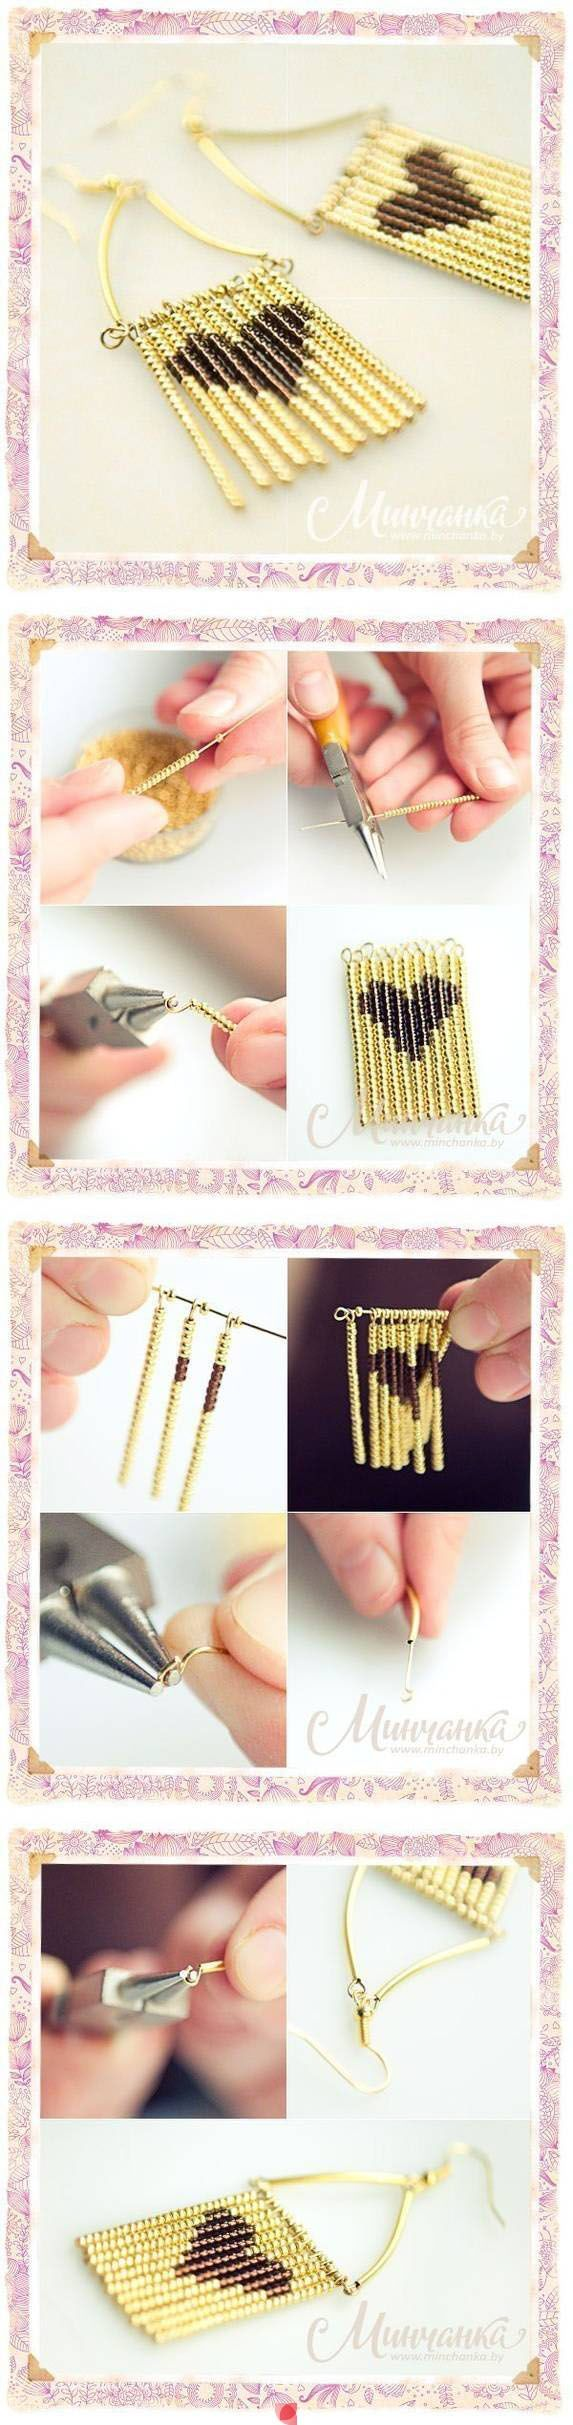 DIY Earings Pictures, Photos, and Images for Facebook, Tumblr, Pinterest, and Twitter